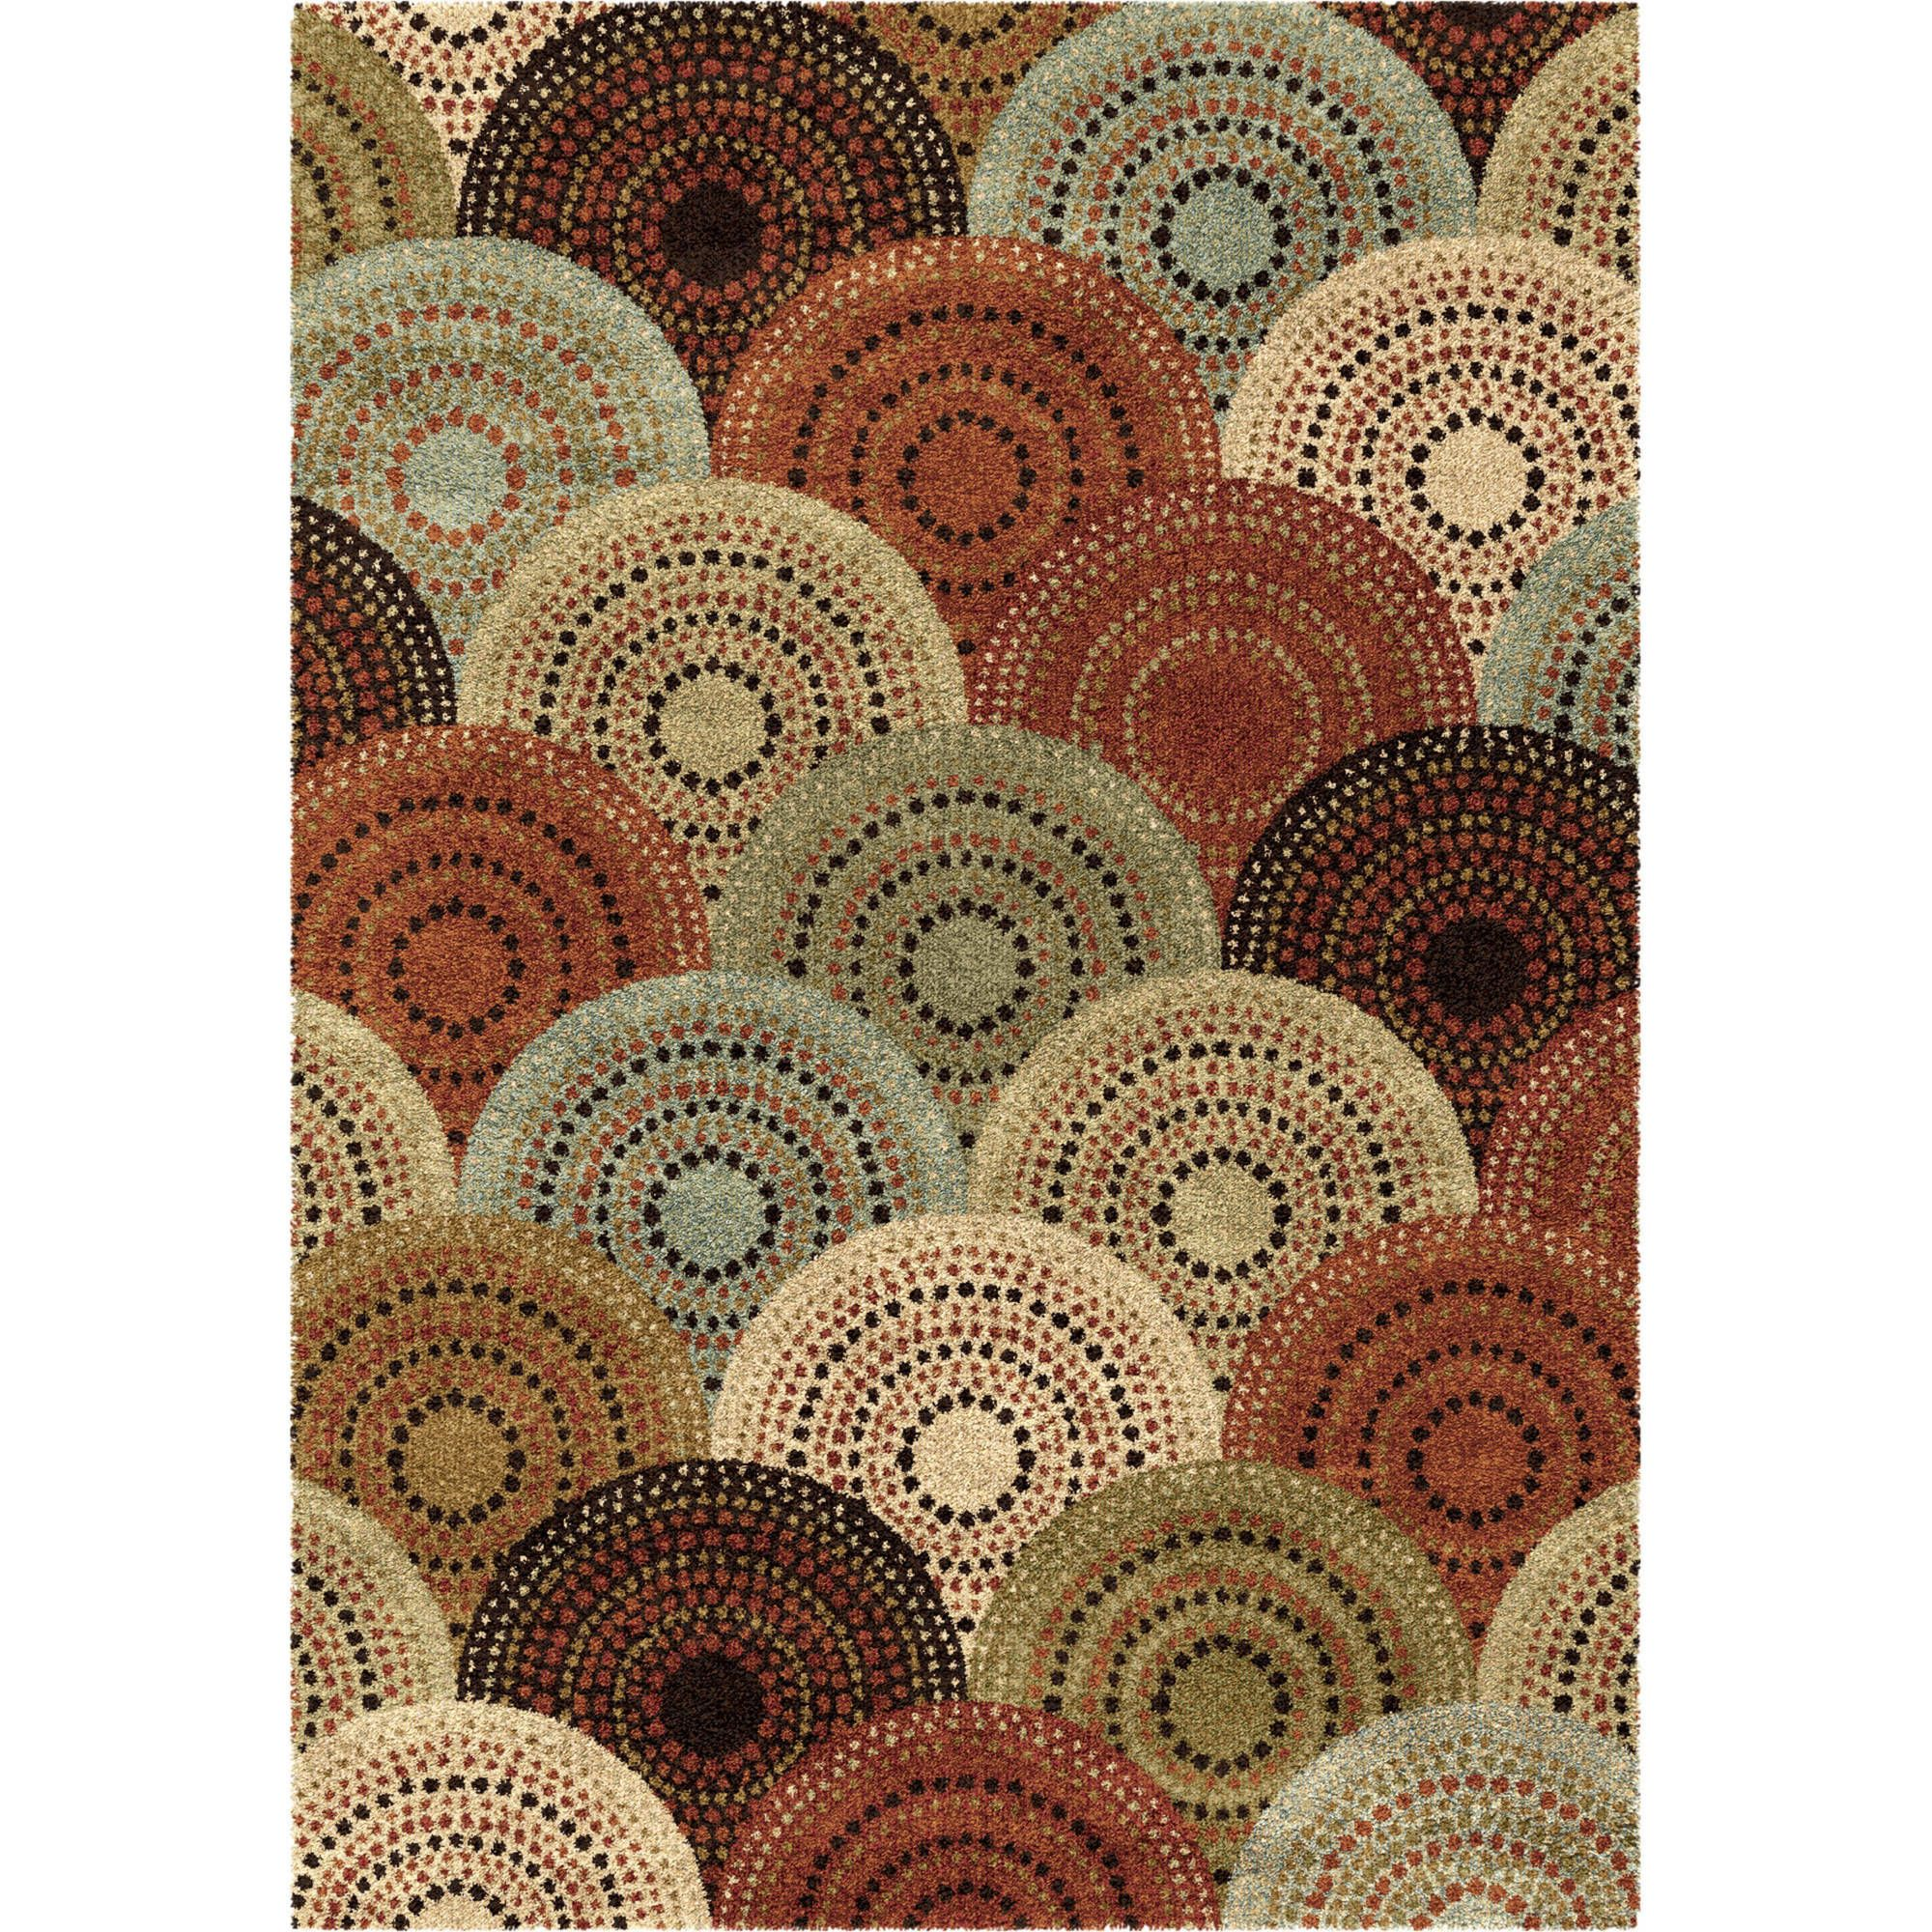 Better Homes and Gardens Spice Dotted Circles Multi-Colored Area Rug ...